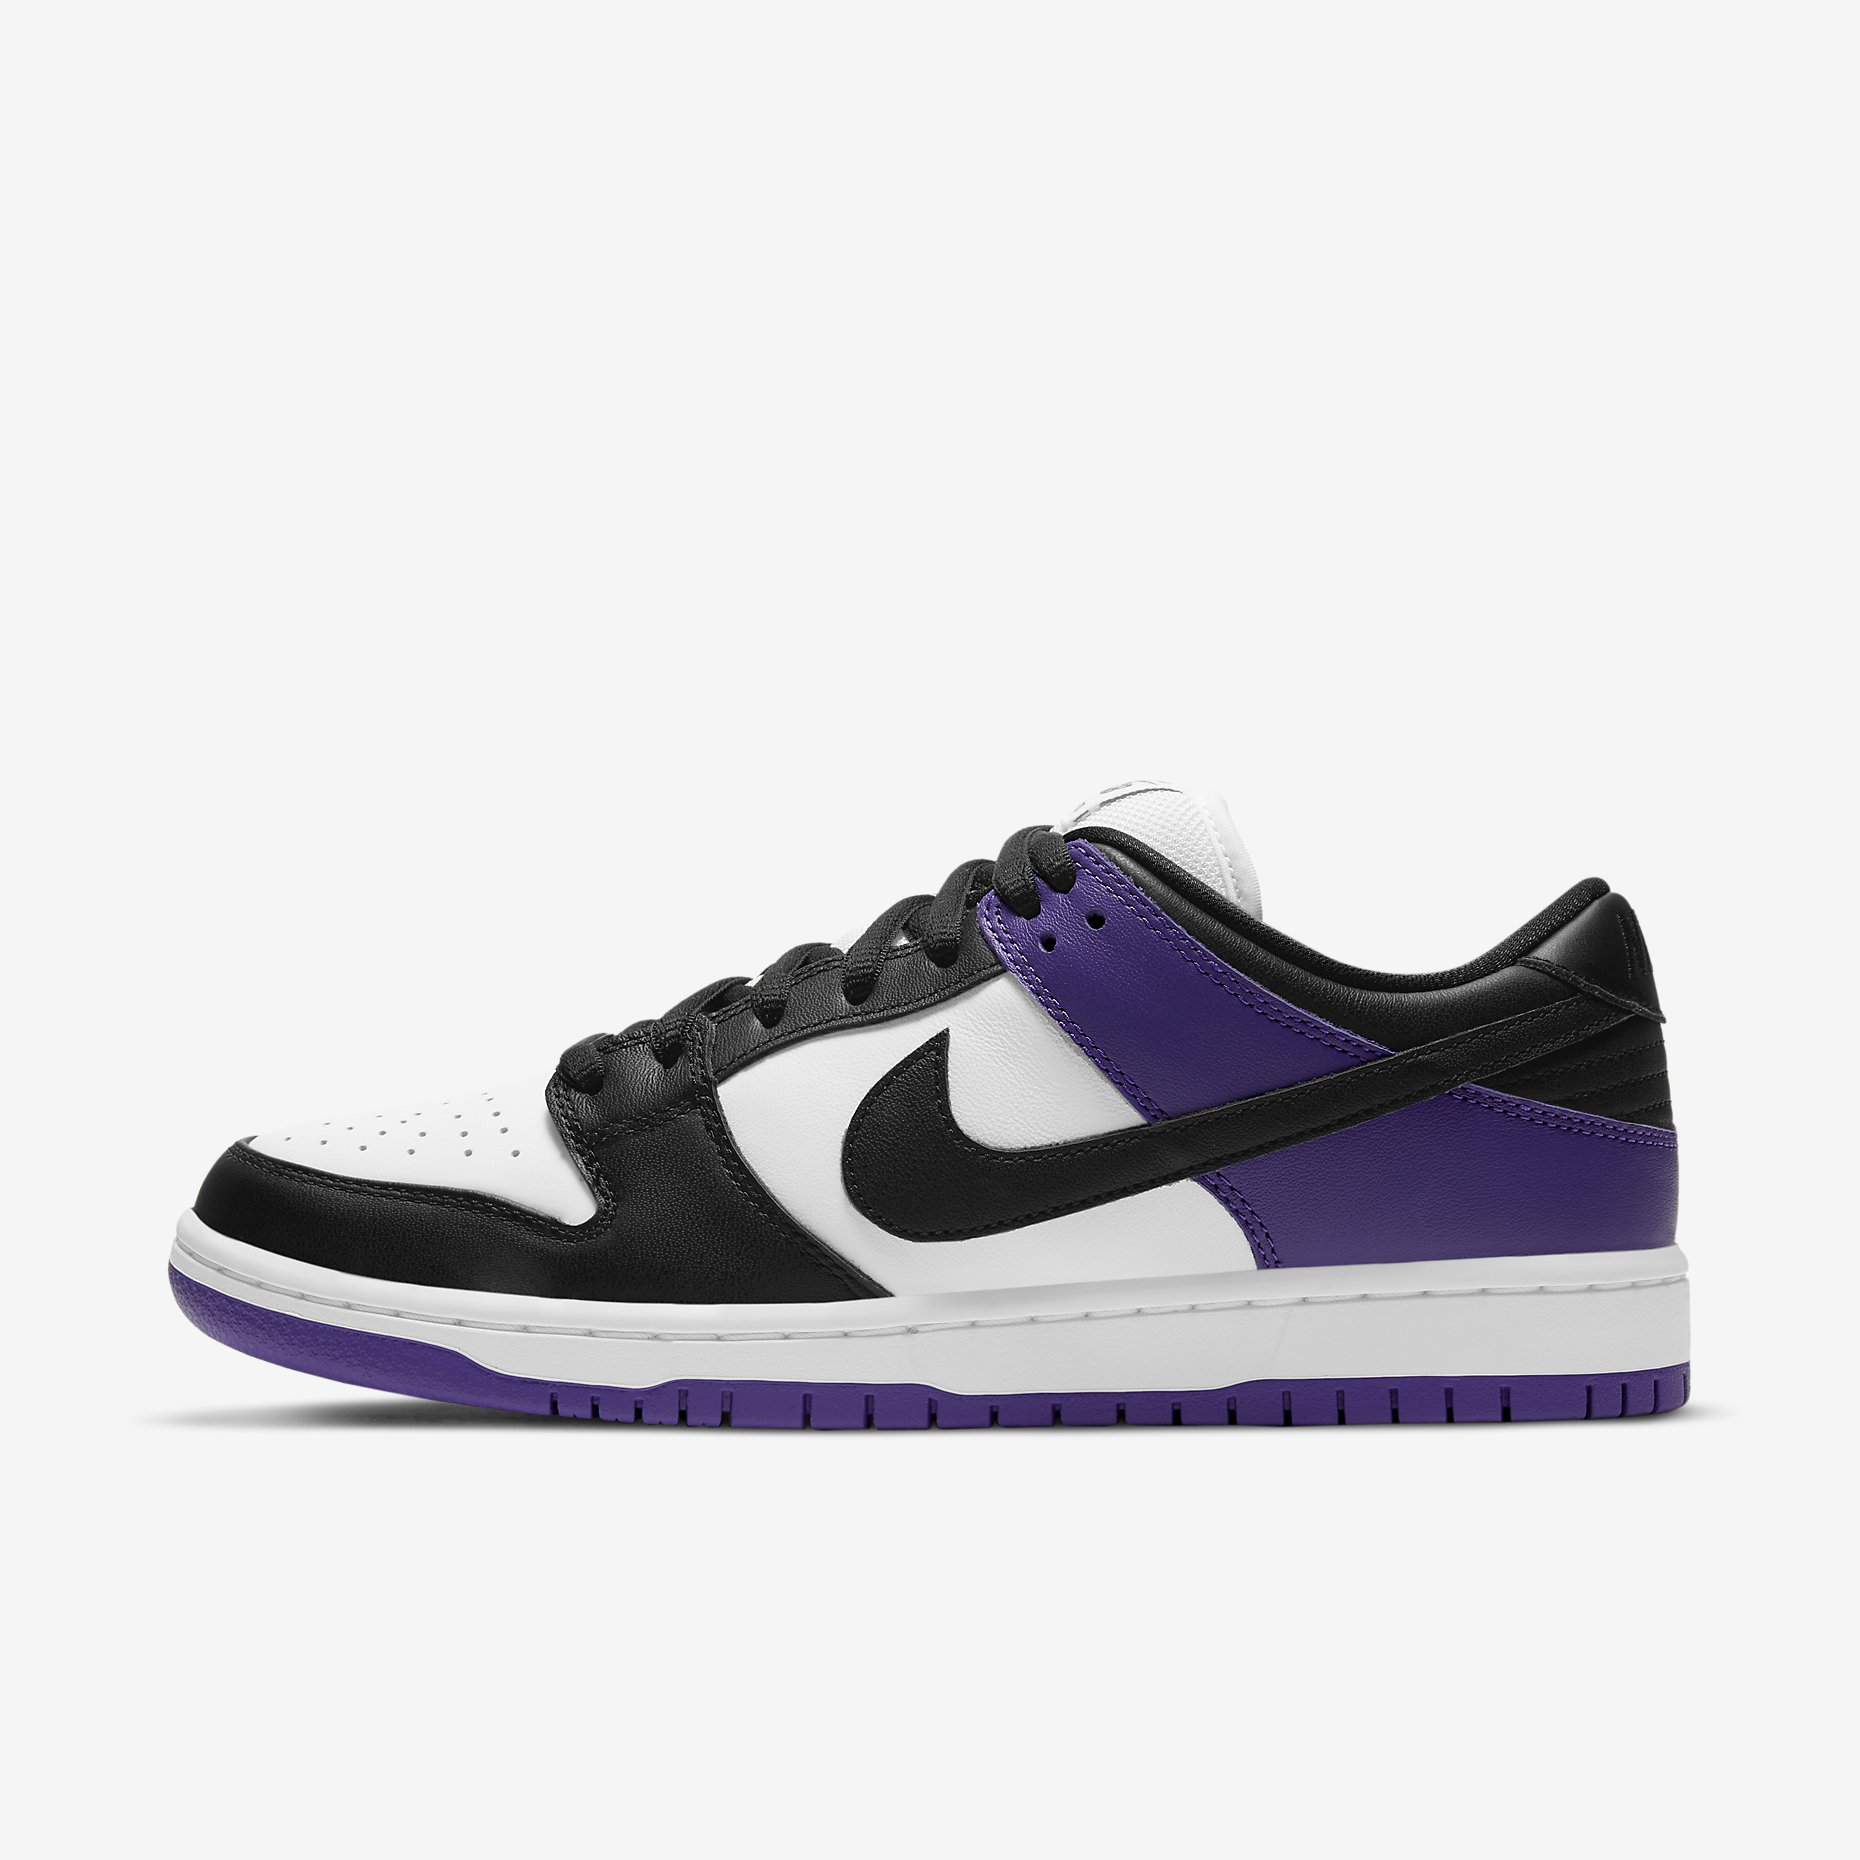 Nike SB Dunk Low Pro 'Court Purple'}